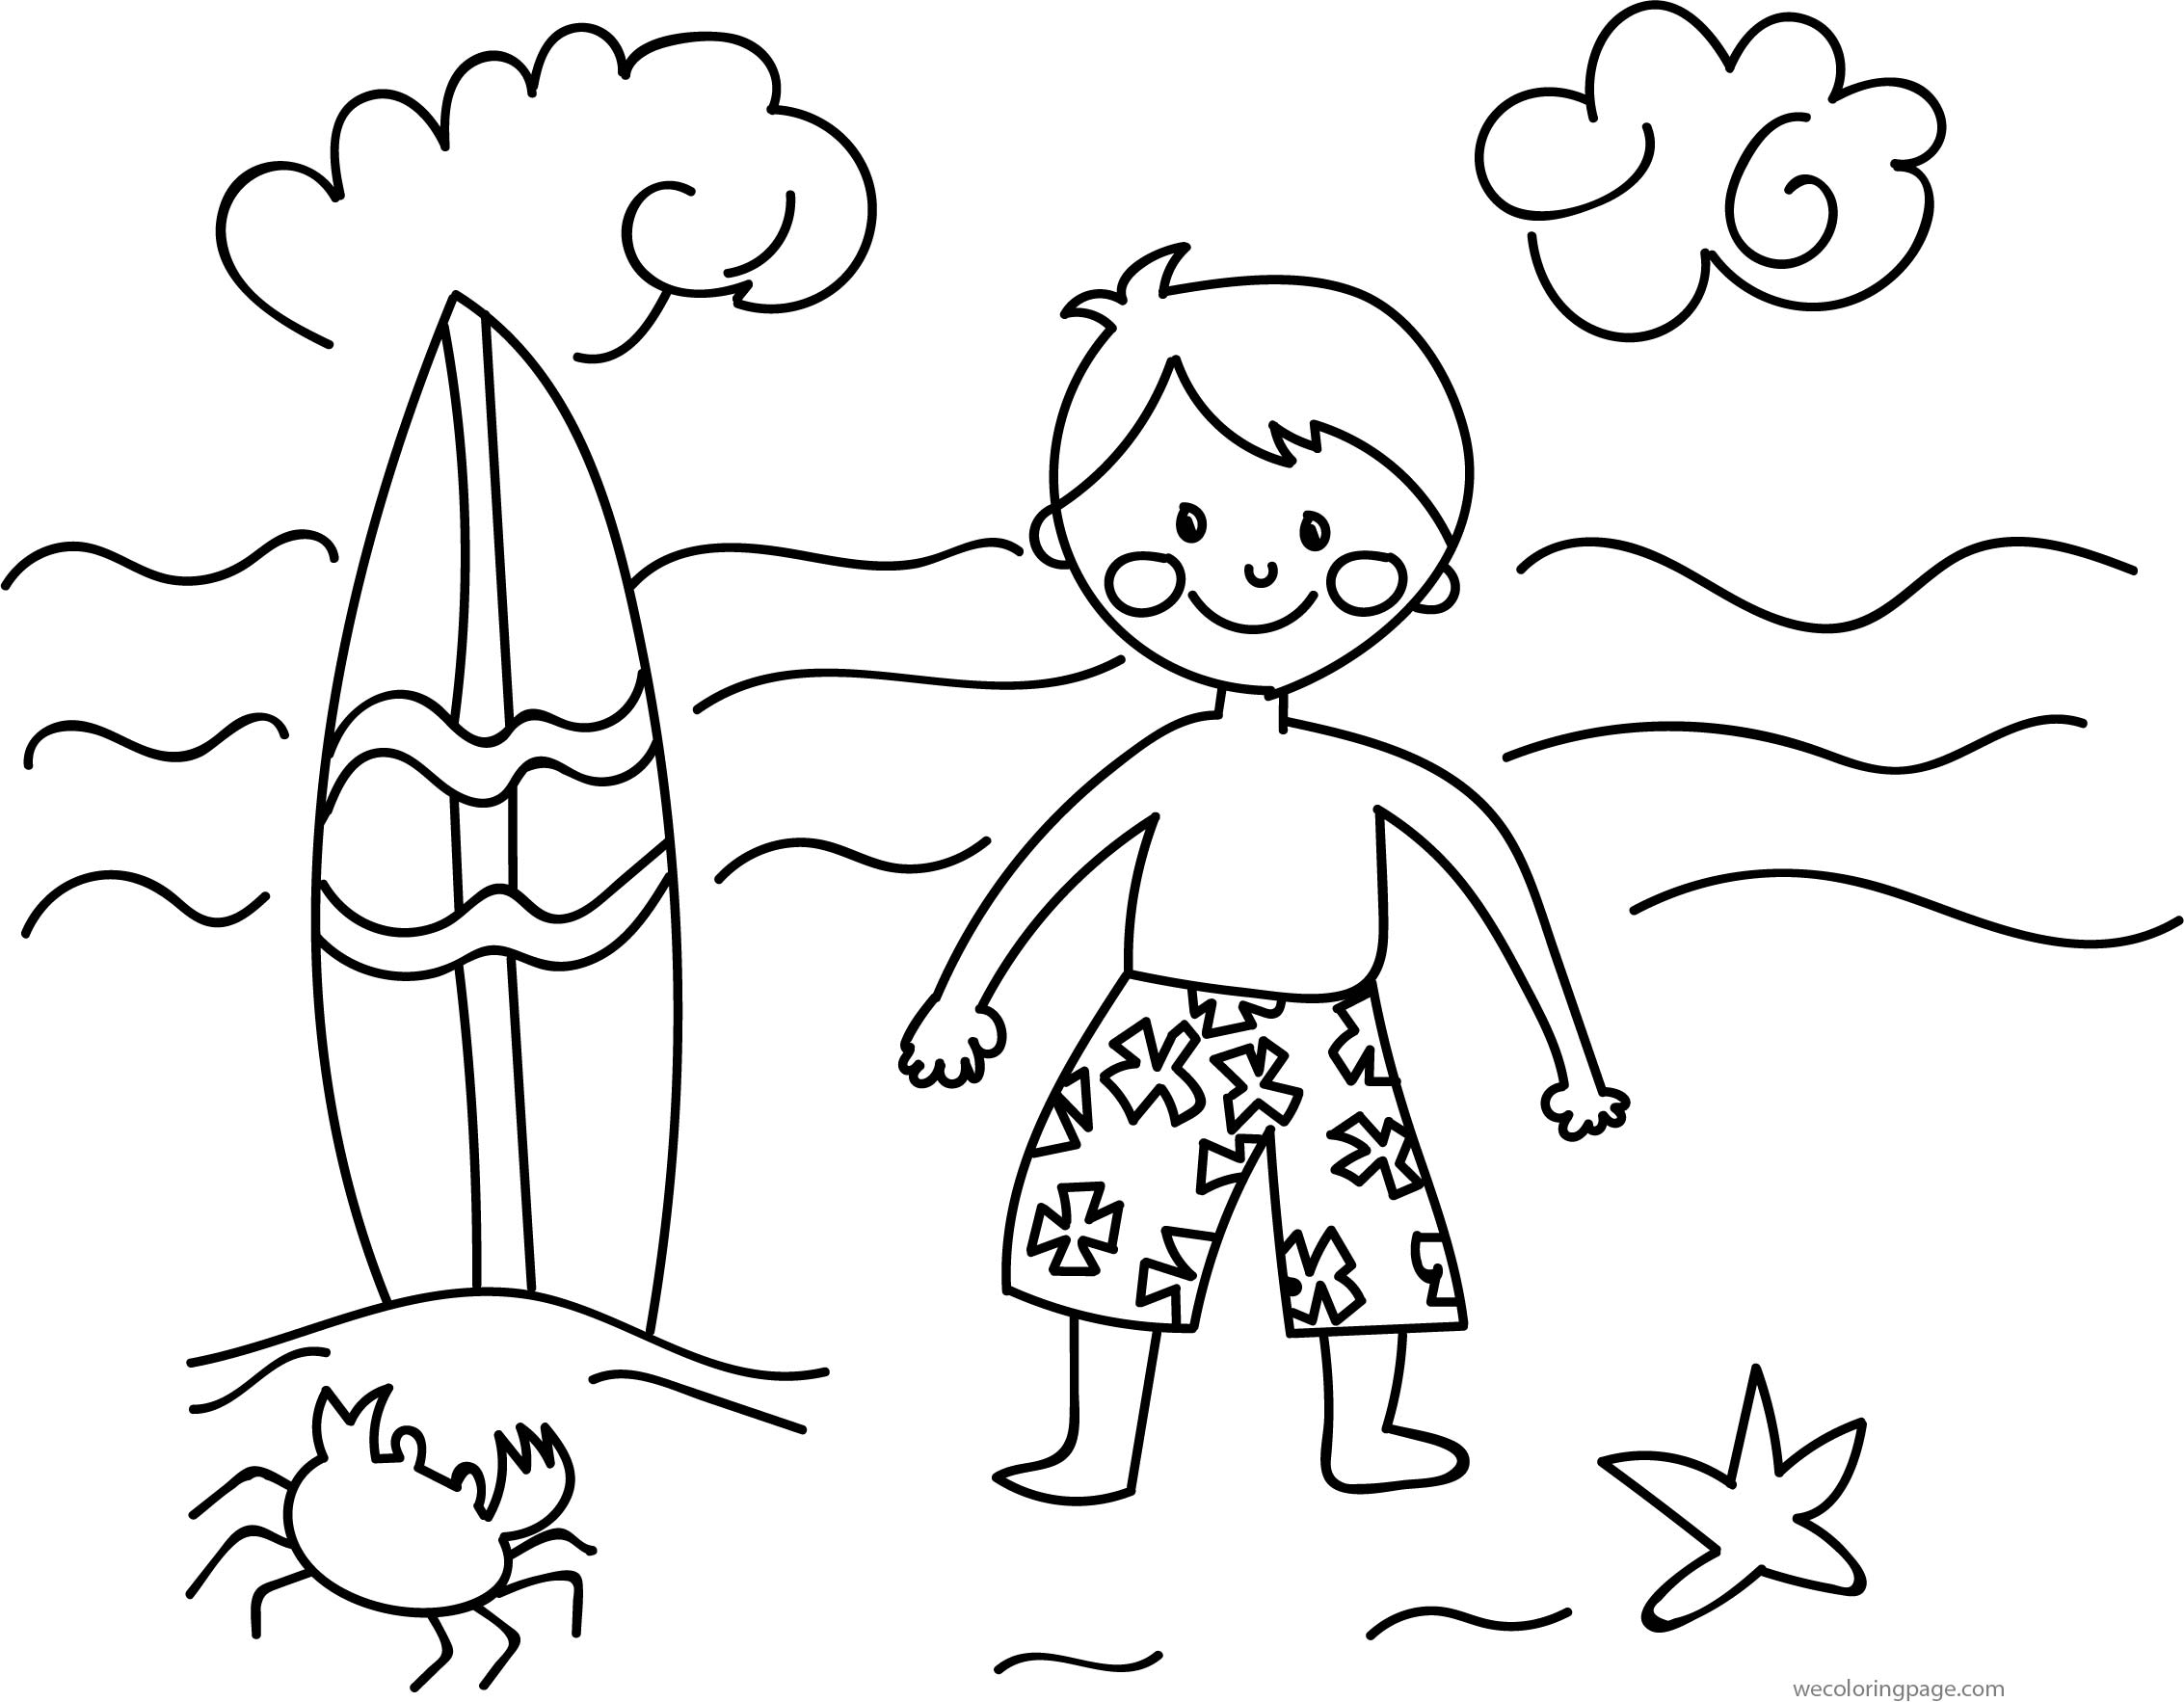 images for kids painting drawing for summer coloring page